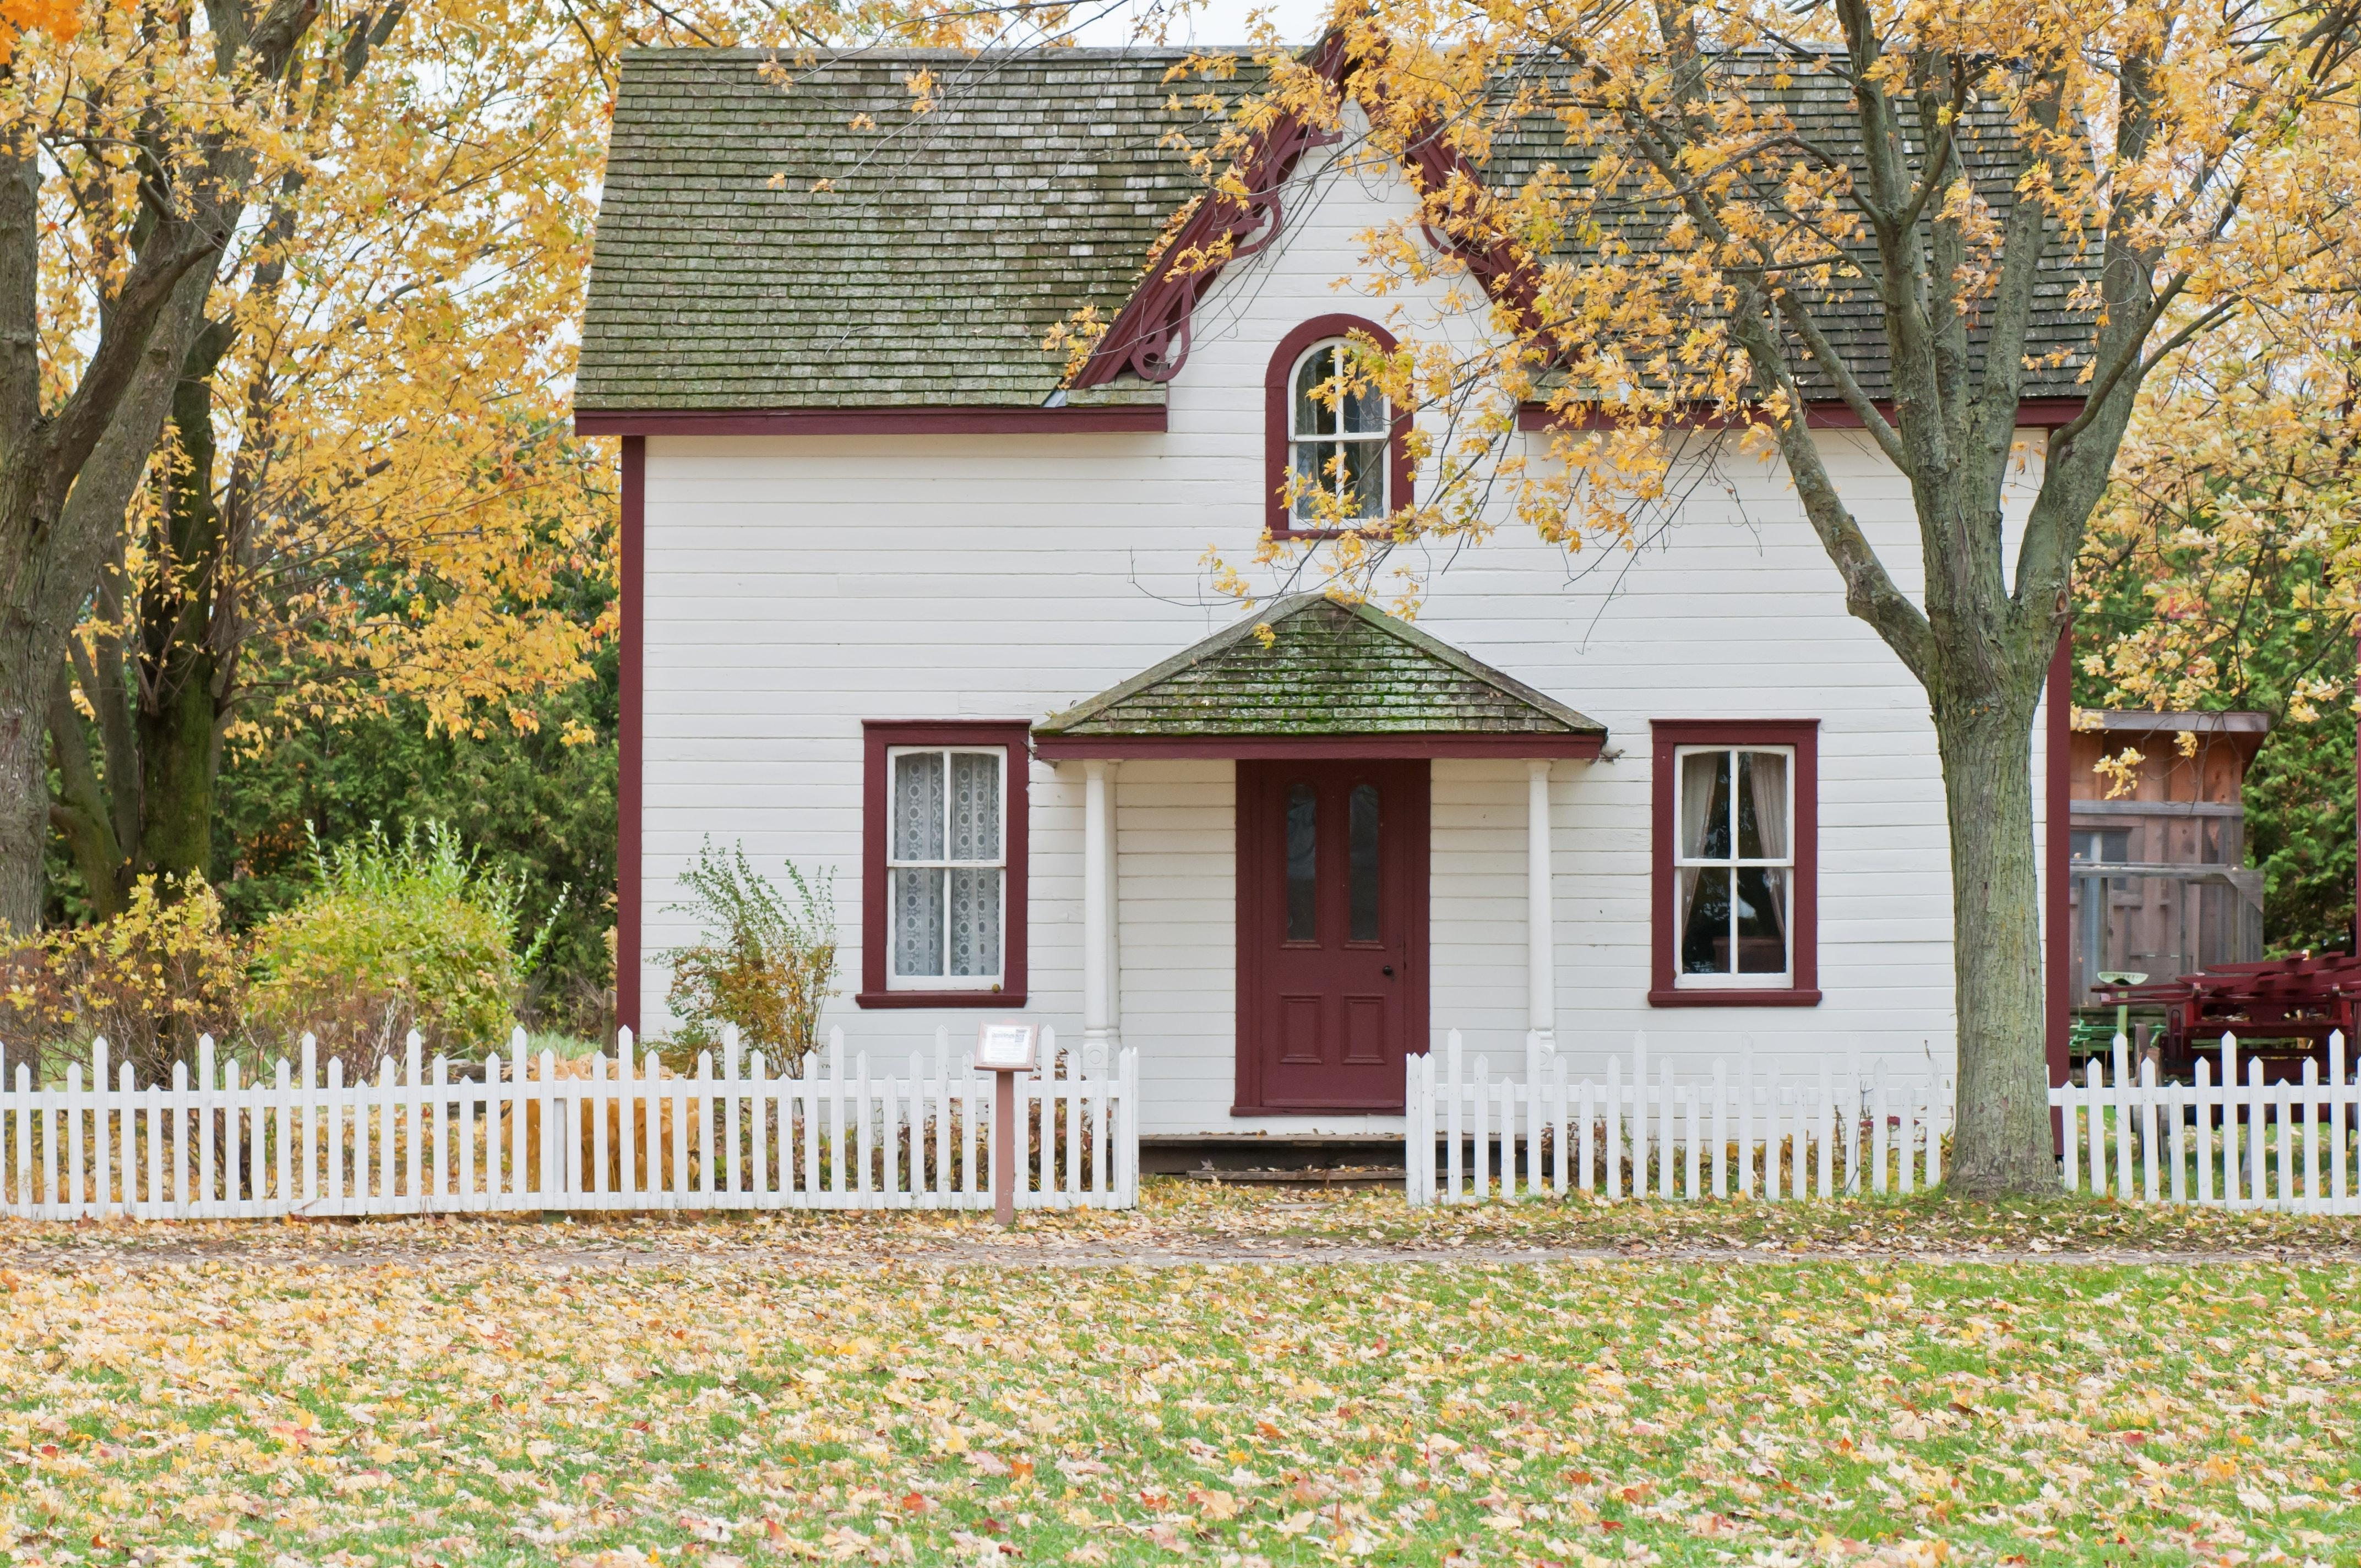 Thinking About Buying a Home? Here are 4 Considerations to Make When Searching Thumbnail